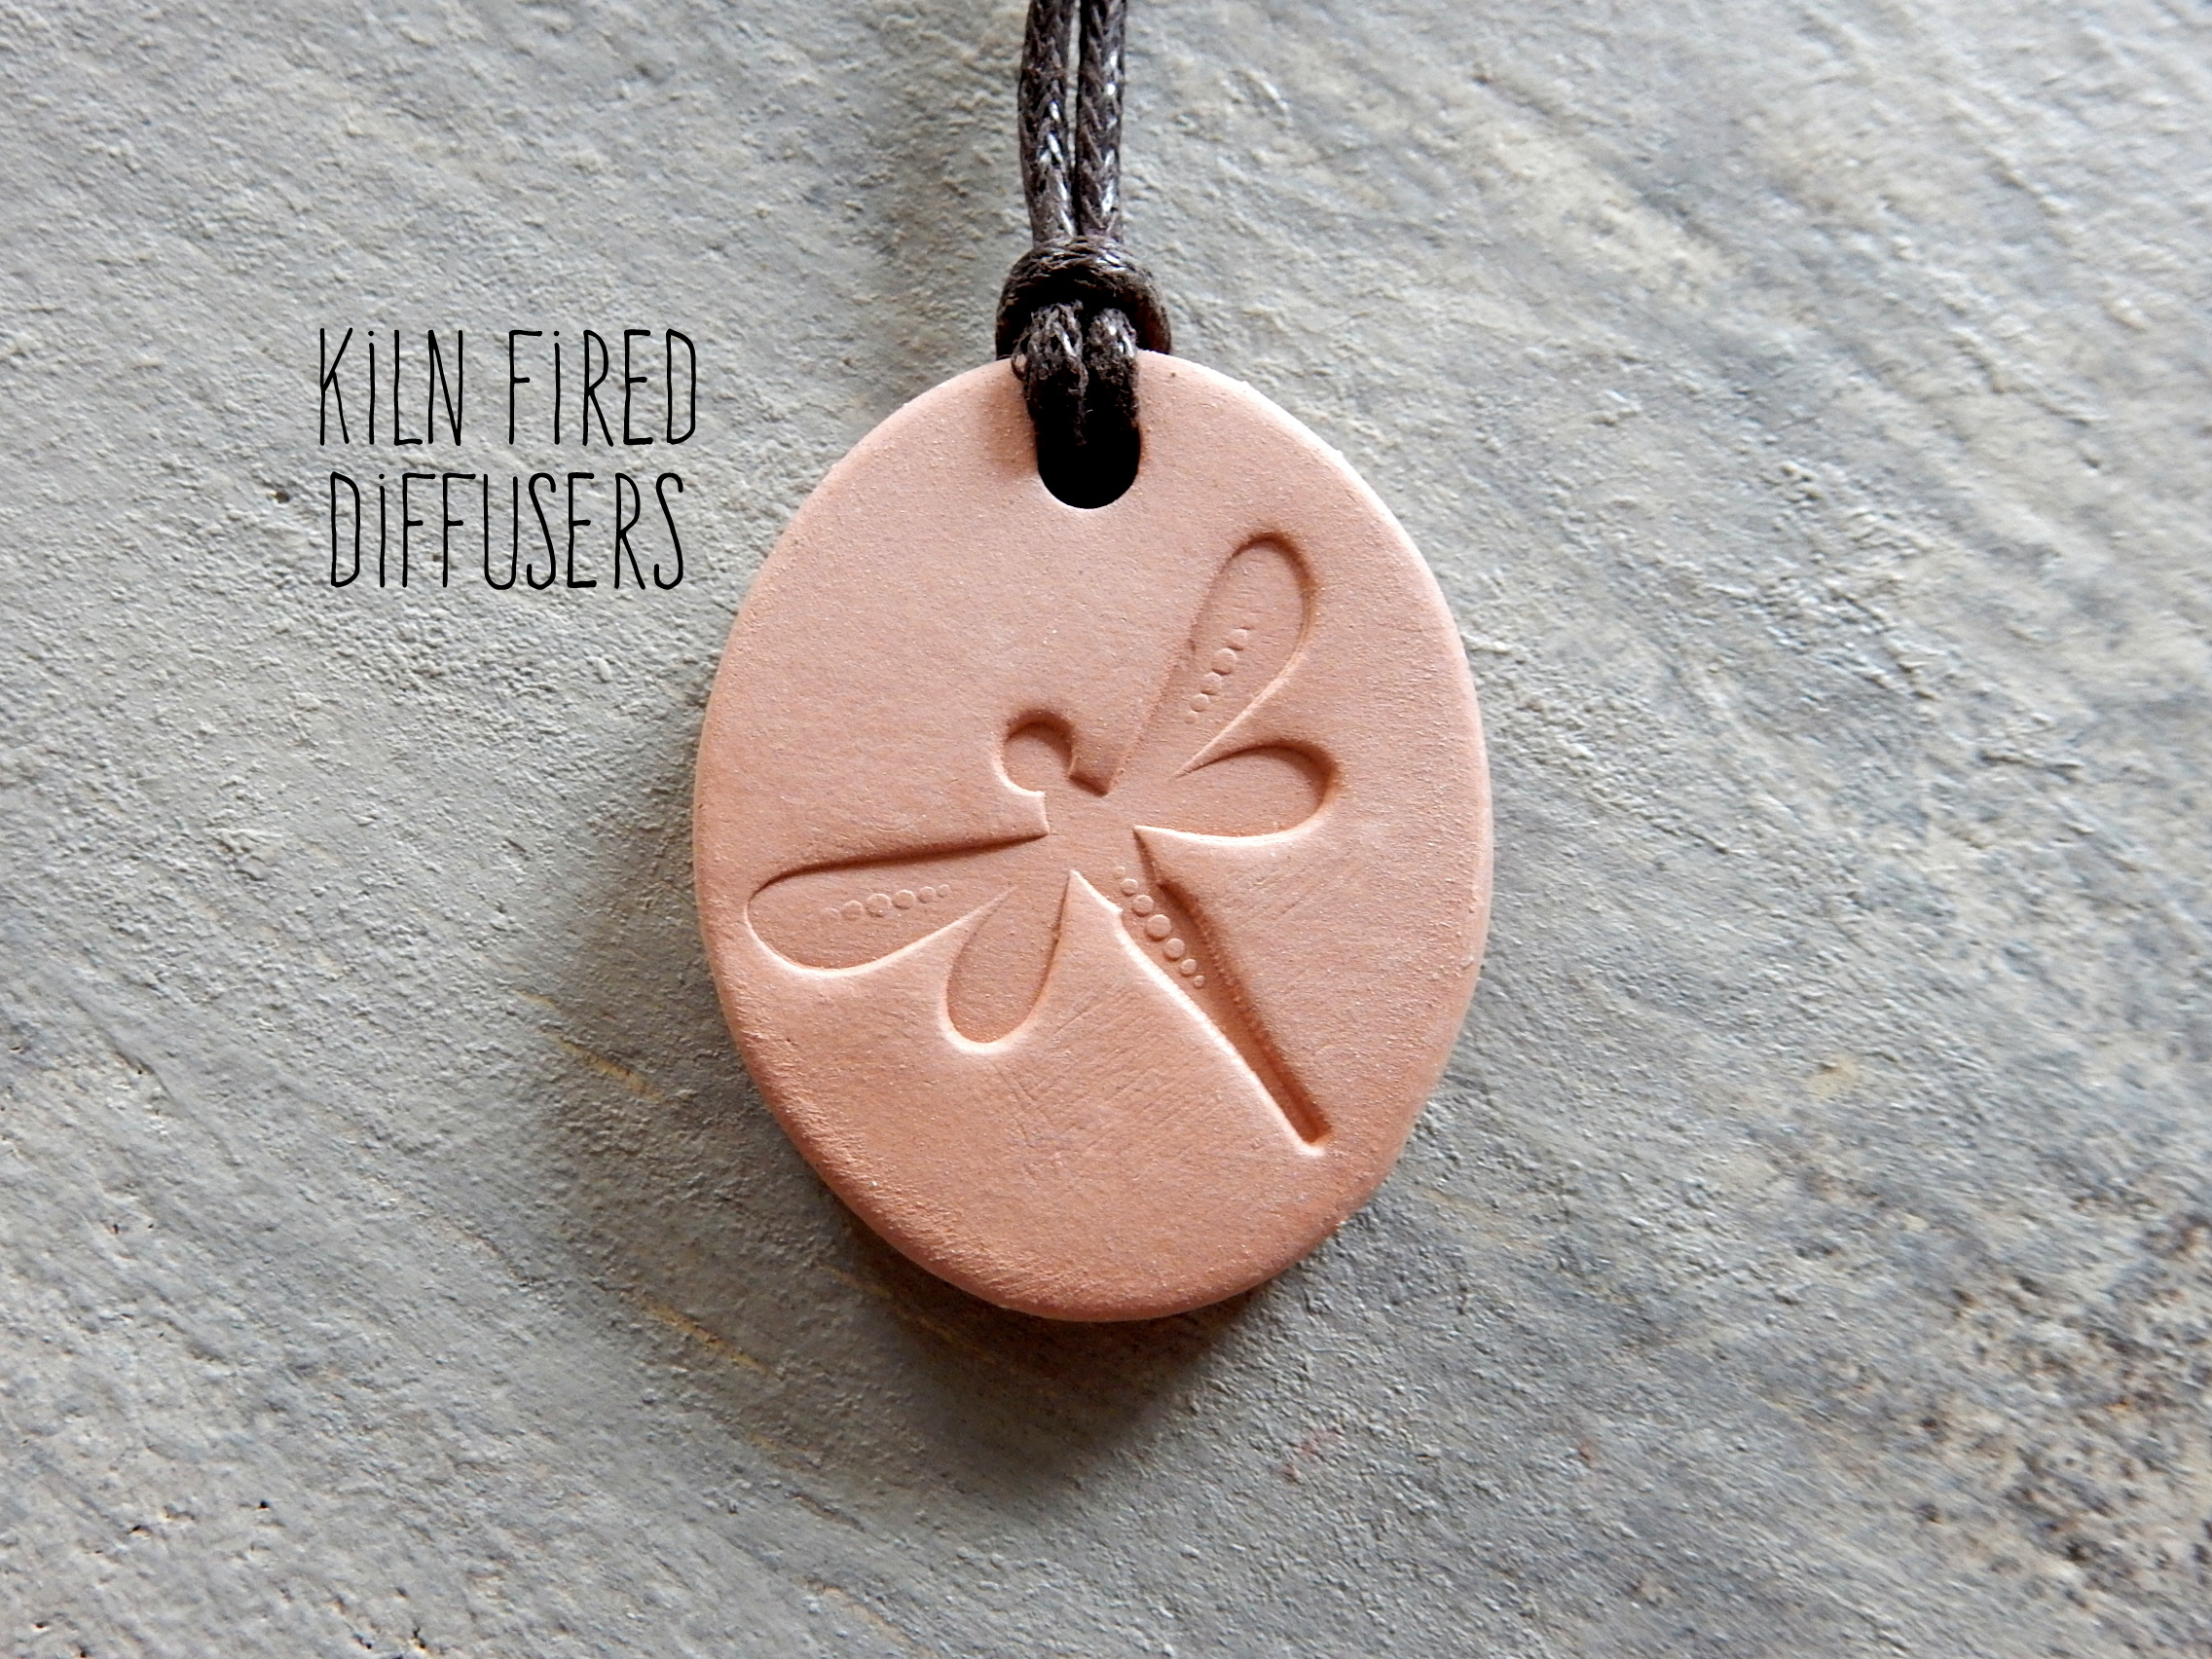 Dragonfly Clay Diffuser Pendant Kiln Fired Diffusers